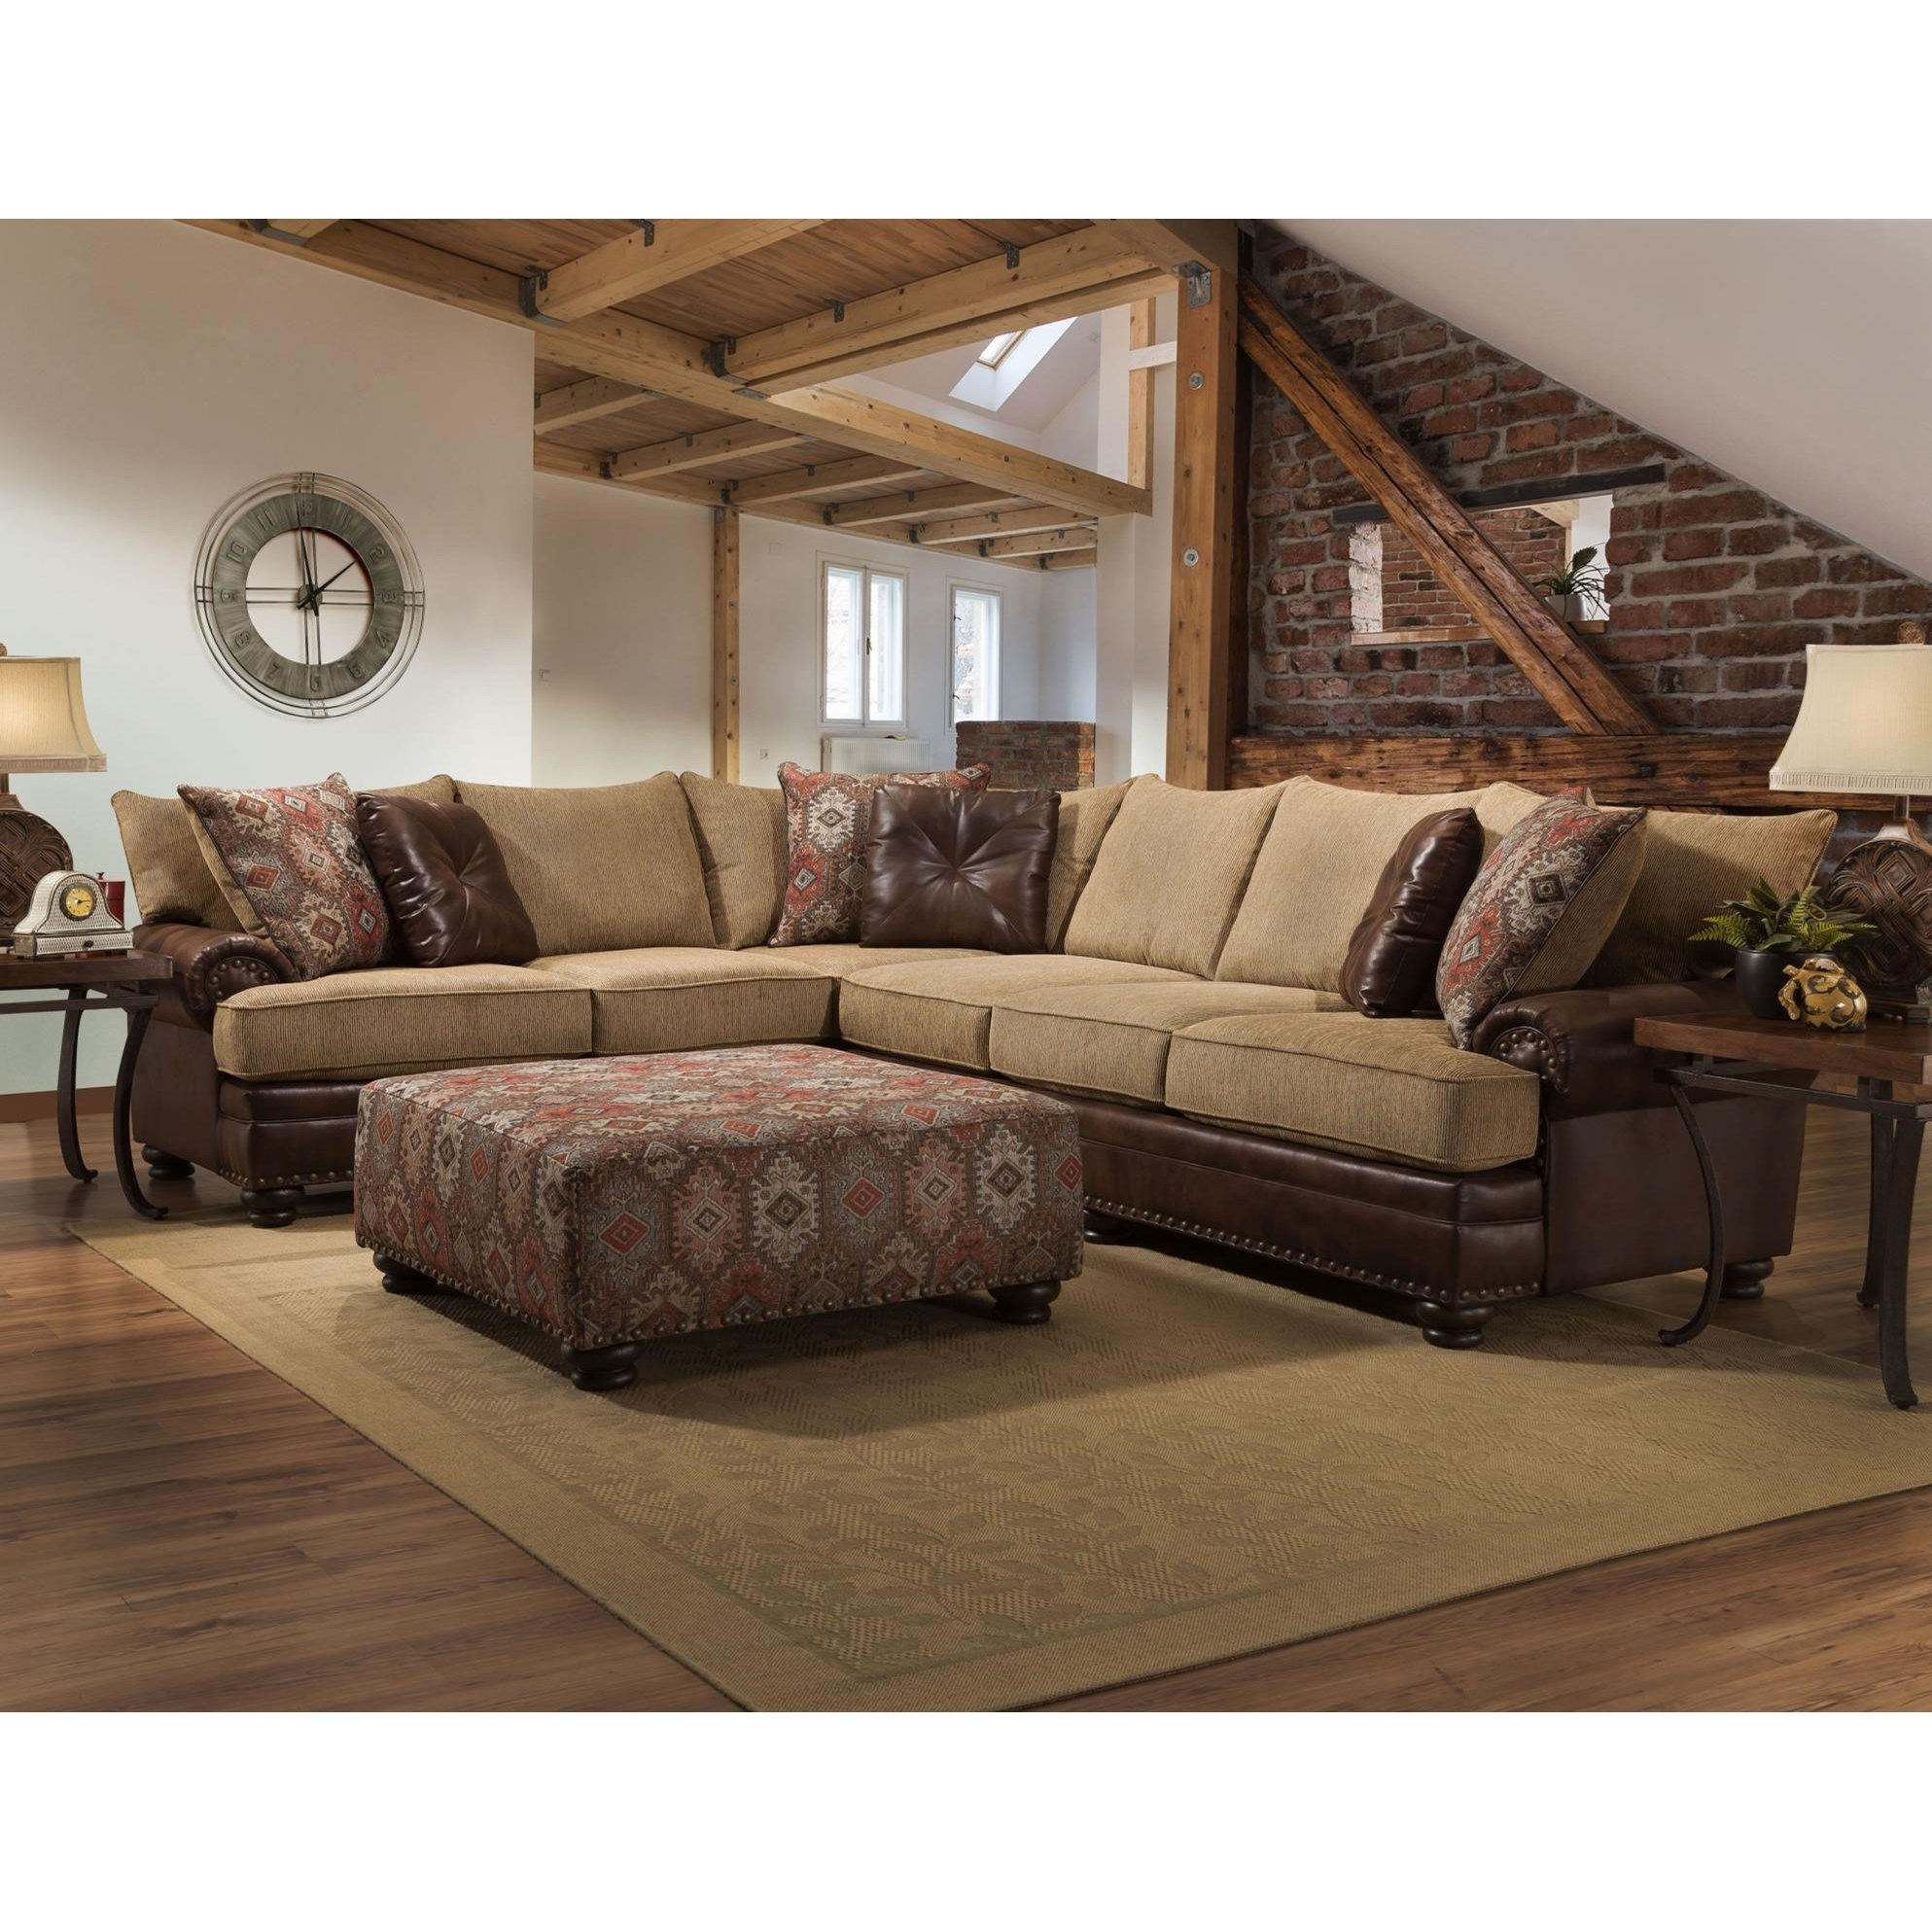 Sectional Sofa and Chair